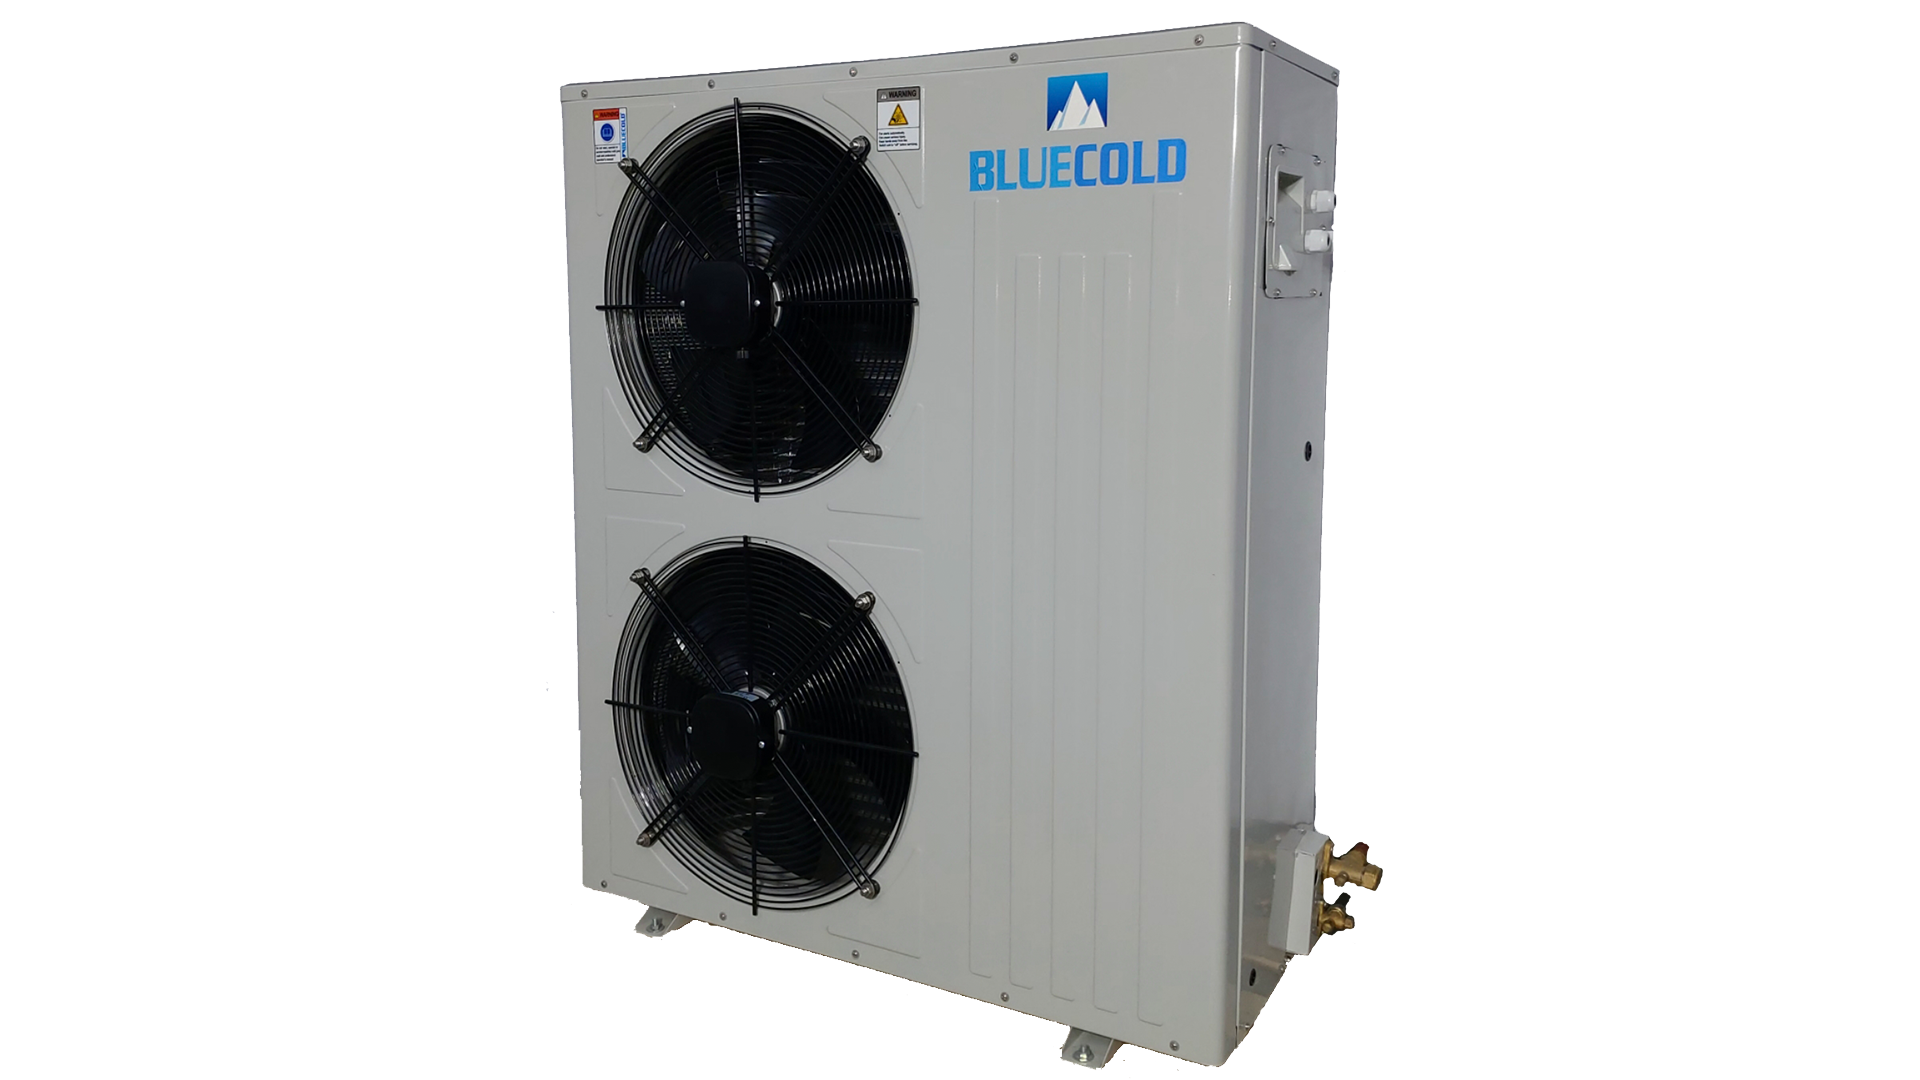 Two fan BCA series condensing unit with Emerson compressor